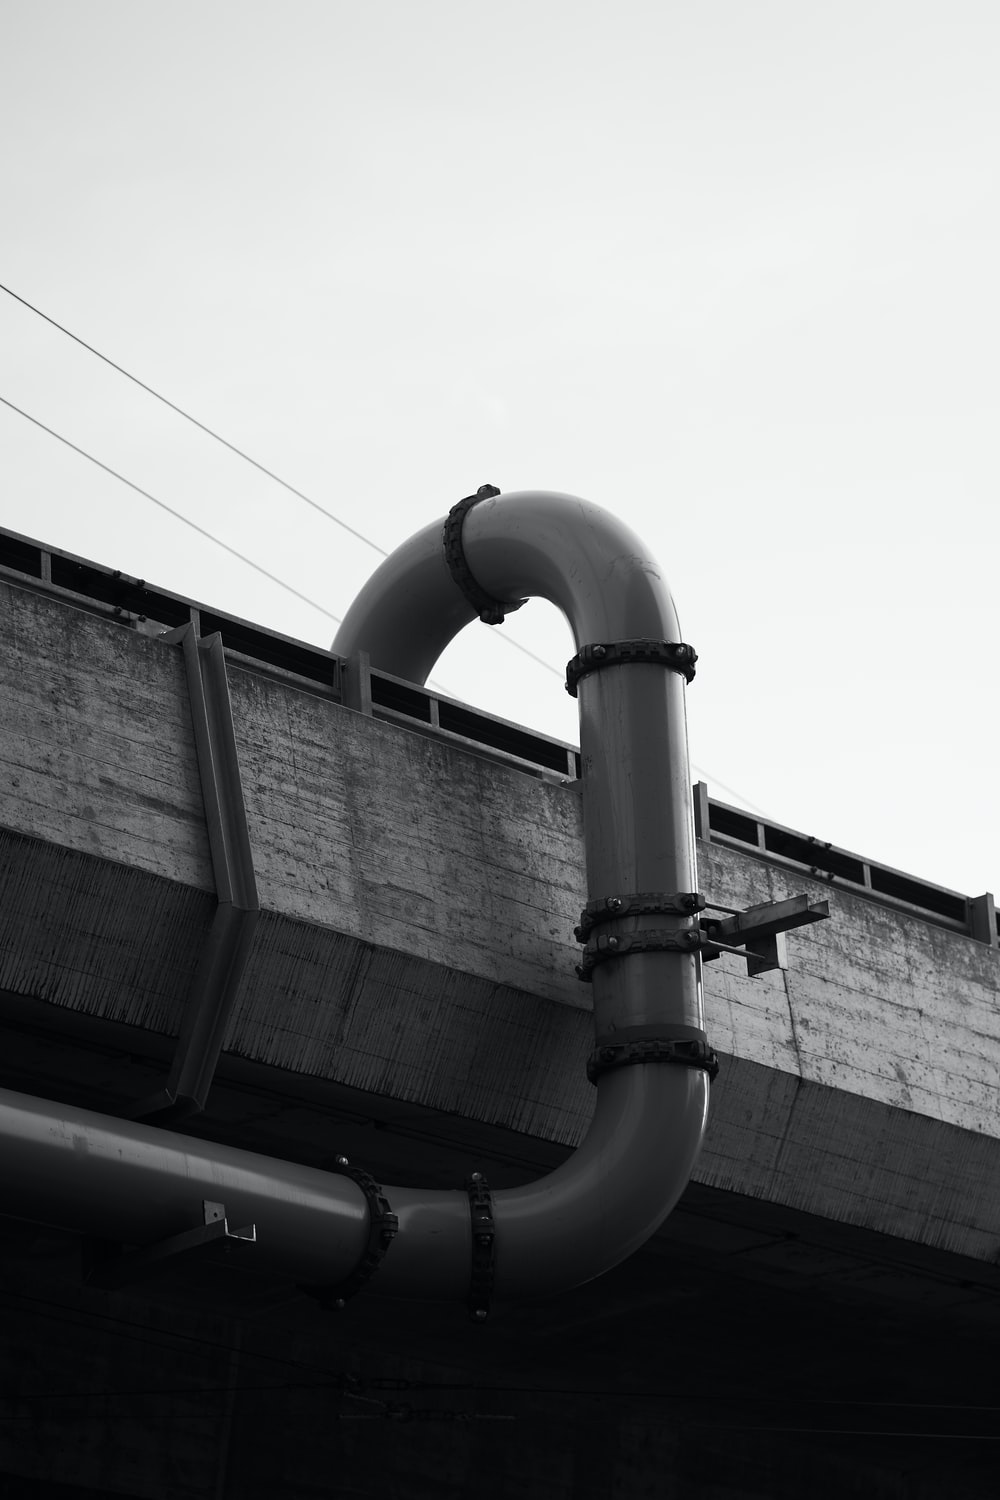 grayscale photography of black pipe